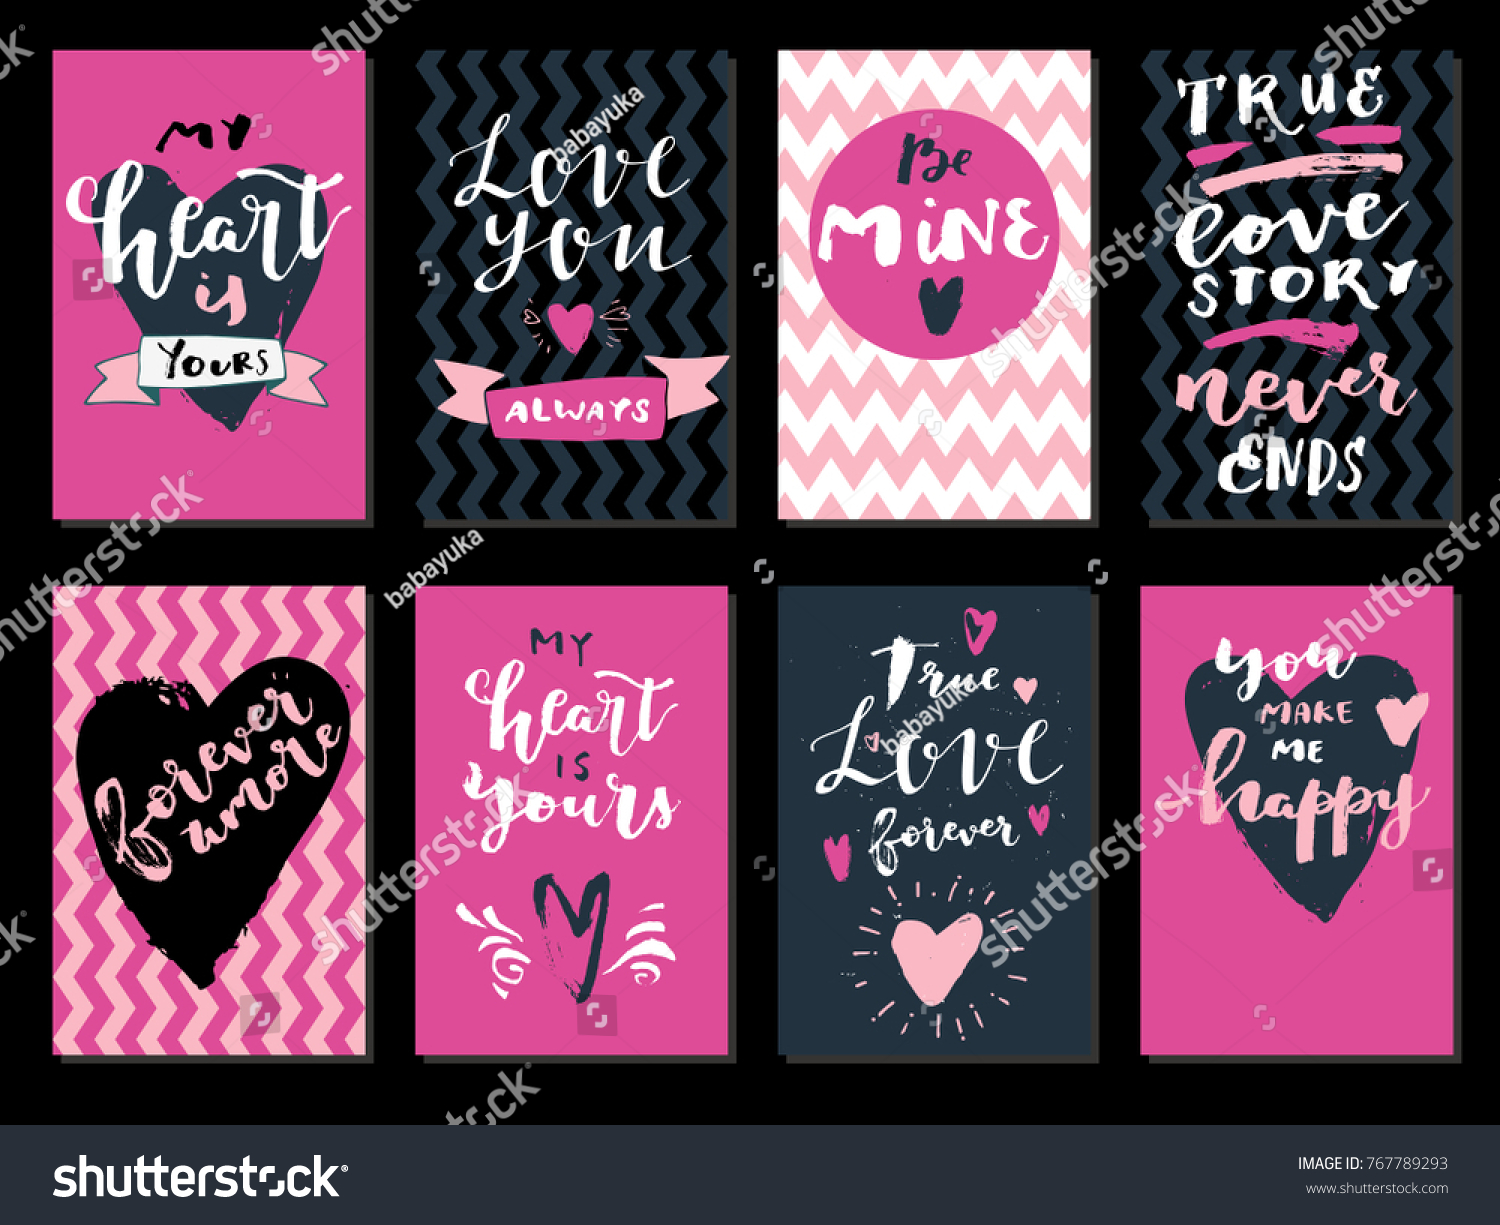 Love Quotes For Valentines Day Cards Set Love Quotes Saint Valentines Day Stock Vector 767789293